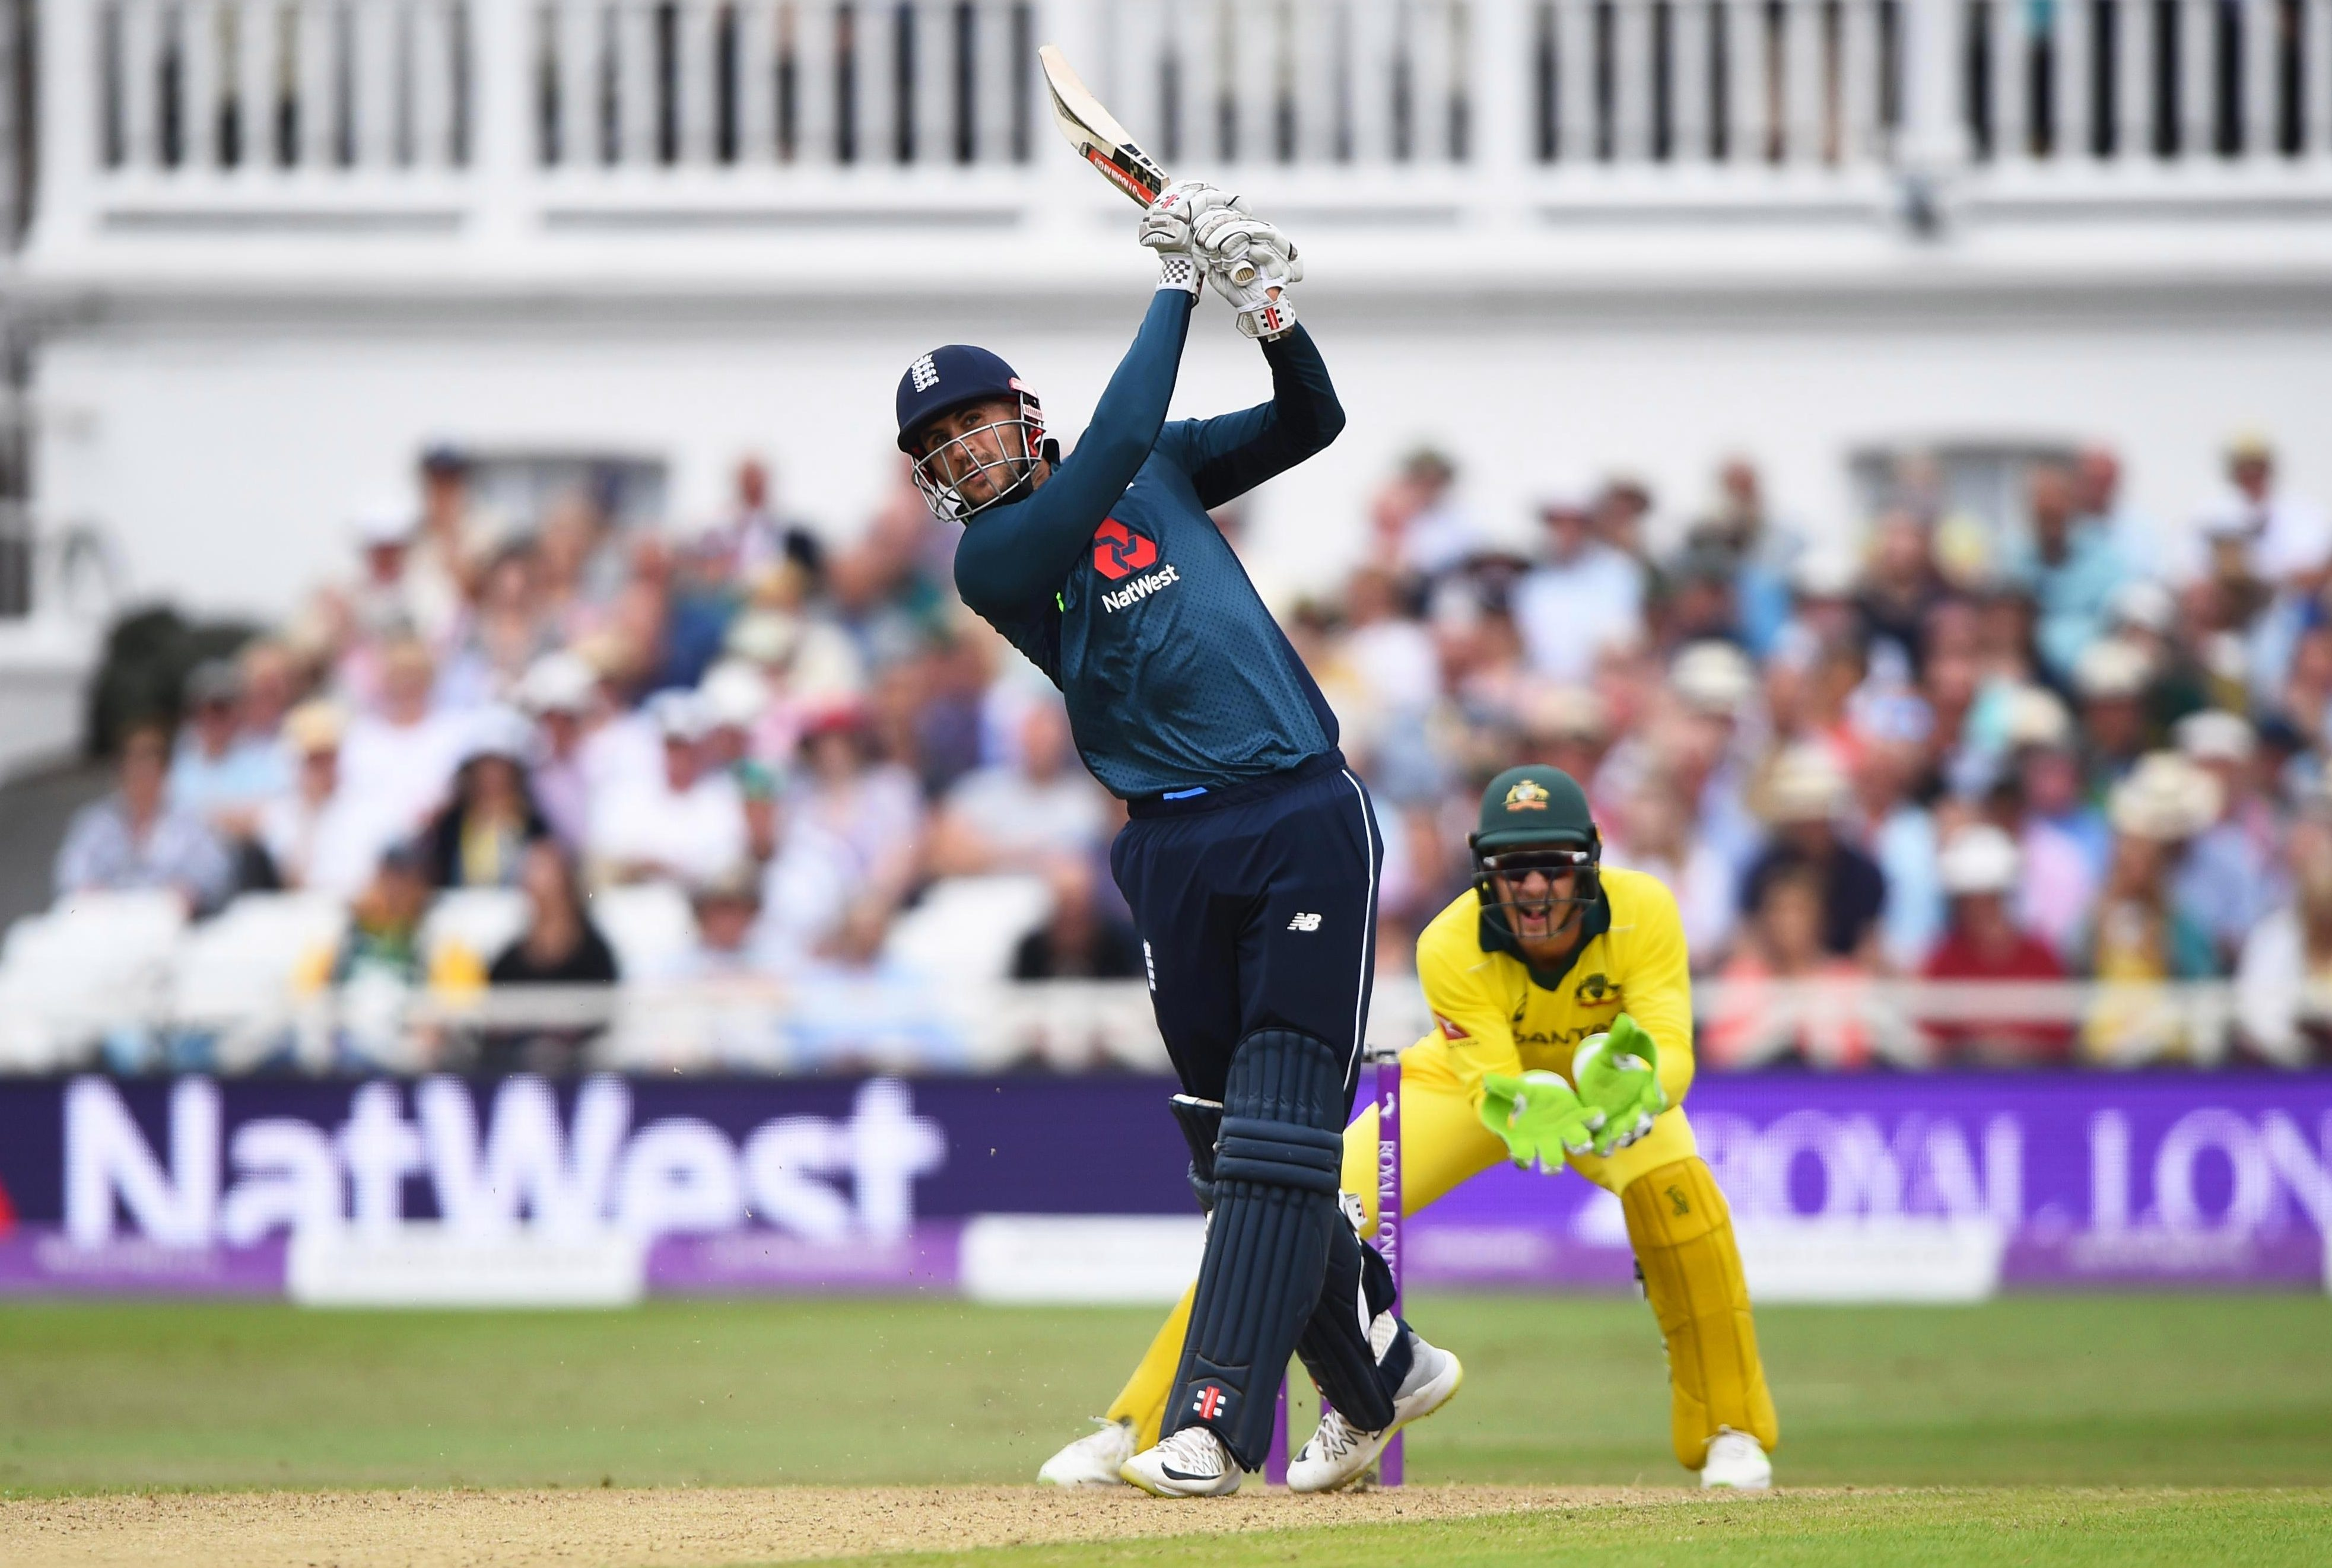 Alex Hales slogged his way to an impressive 147 in the last ODI against Australia